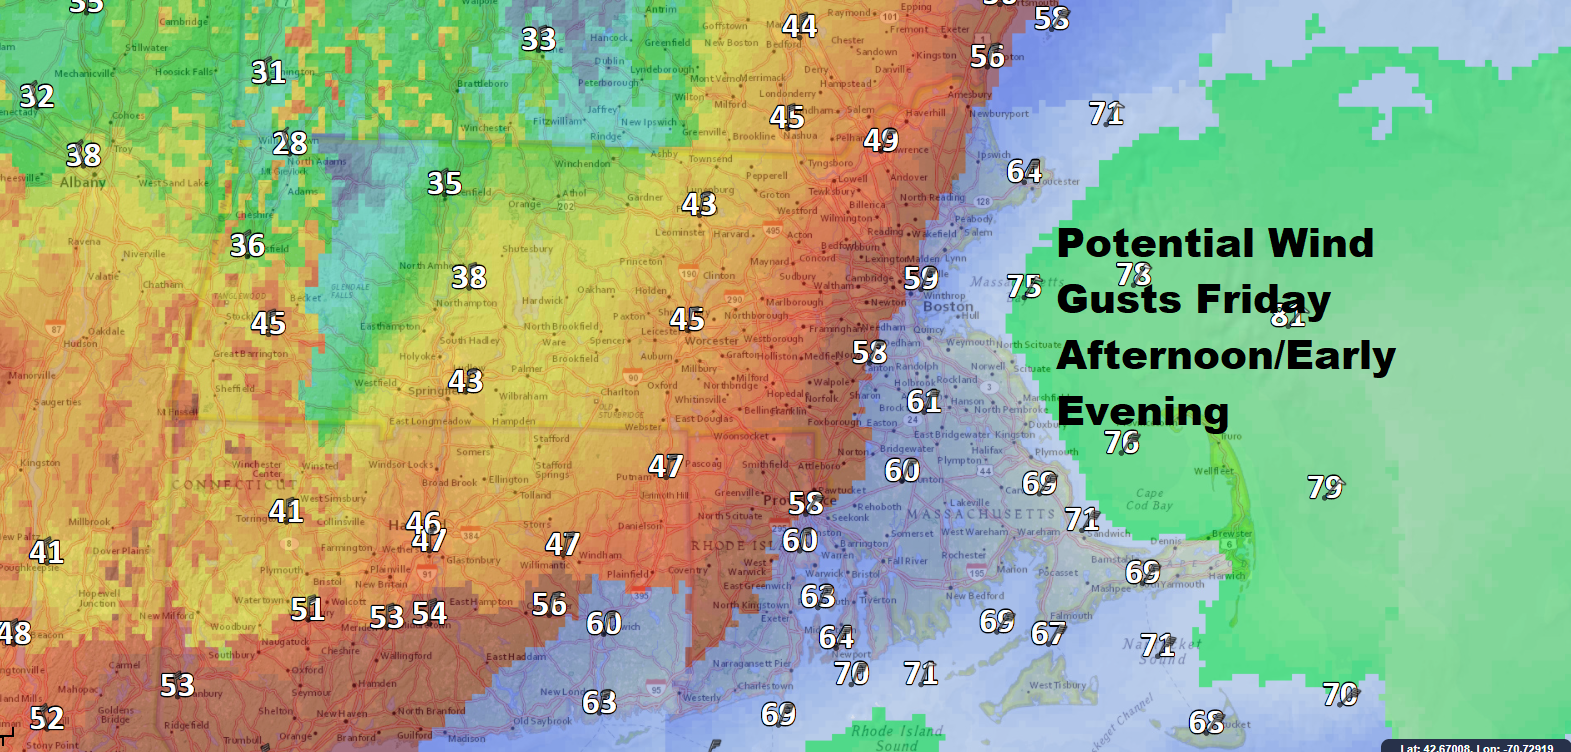 Wind gusts are expected to reach hurricane force along the coastal waters south of Boston. (Dave Epstein/WBUR)